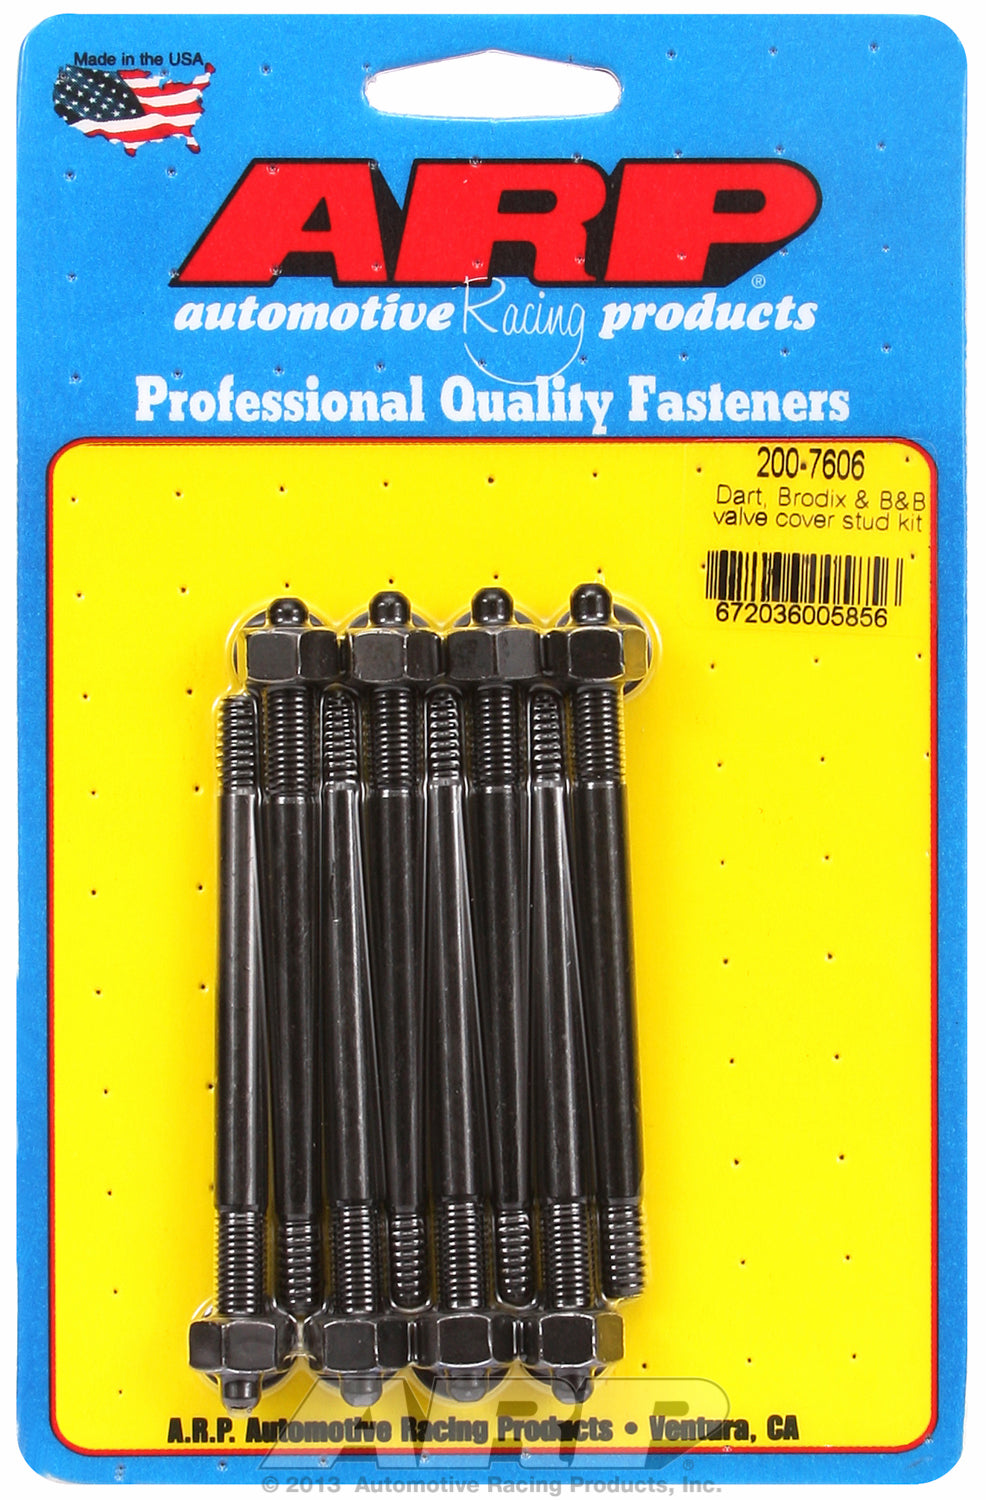 Valve Cover Stud Kit for Cast Aluminum Covers Stud kit, Dart, Brodix, B&B Black Oxide - Hex Head